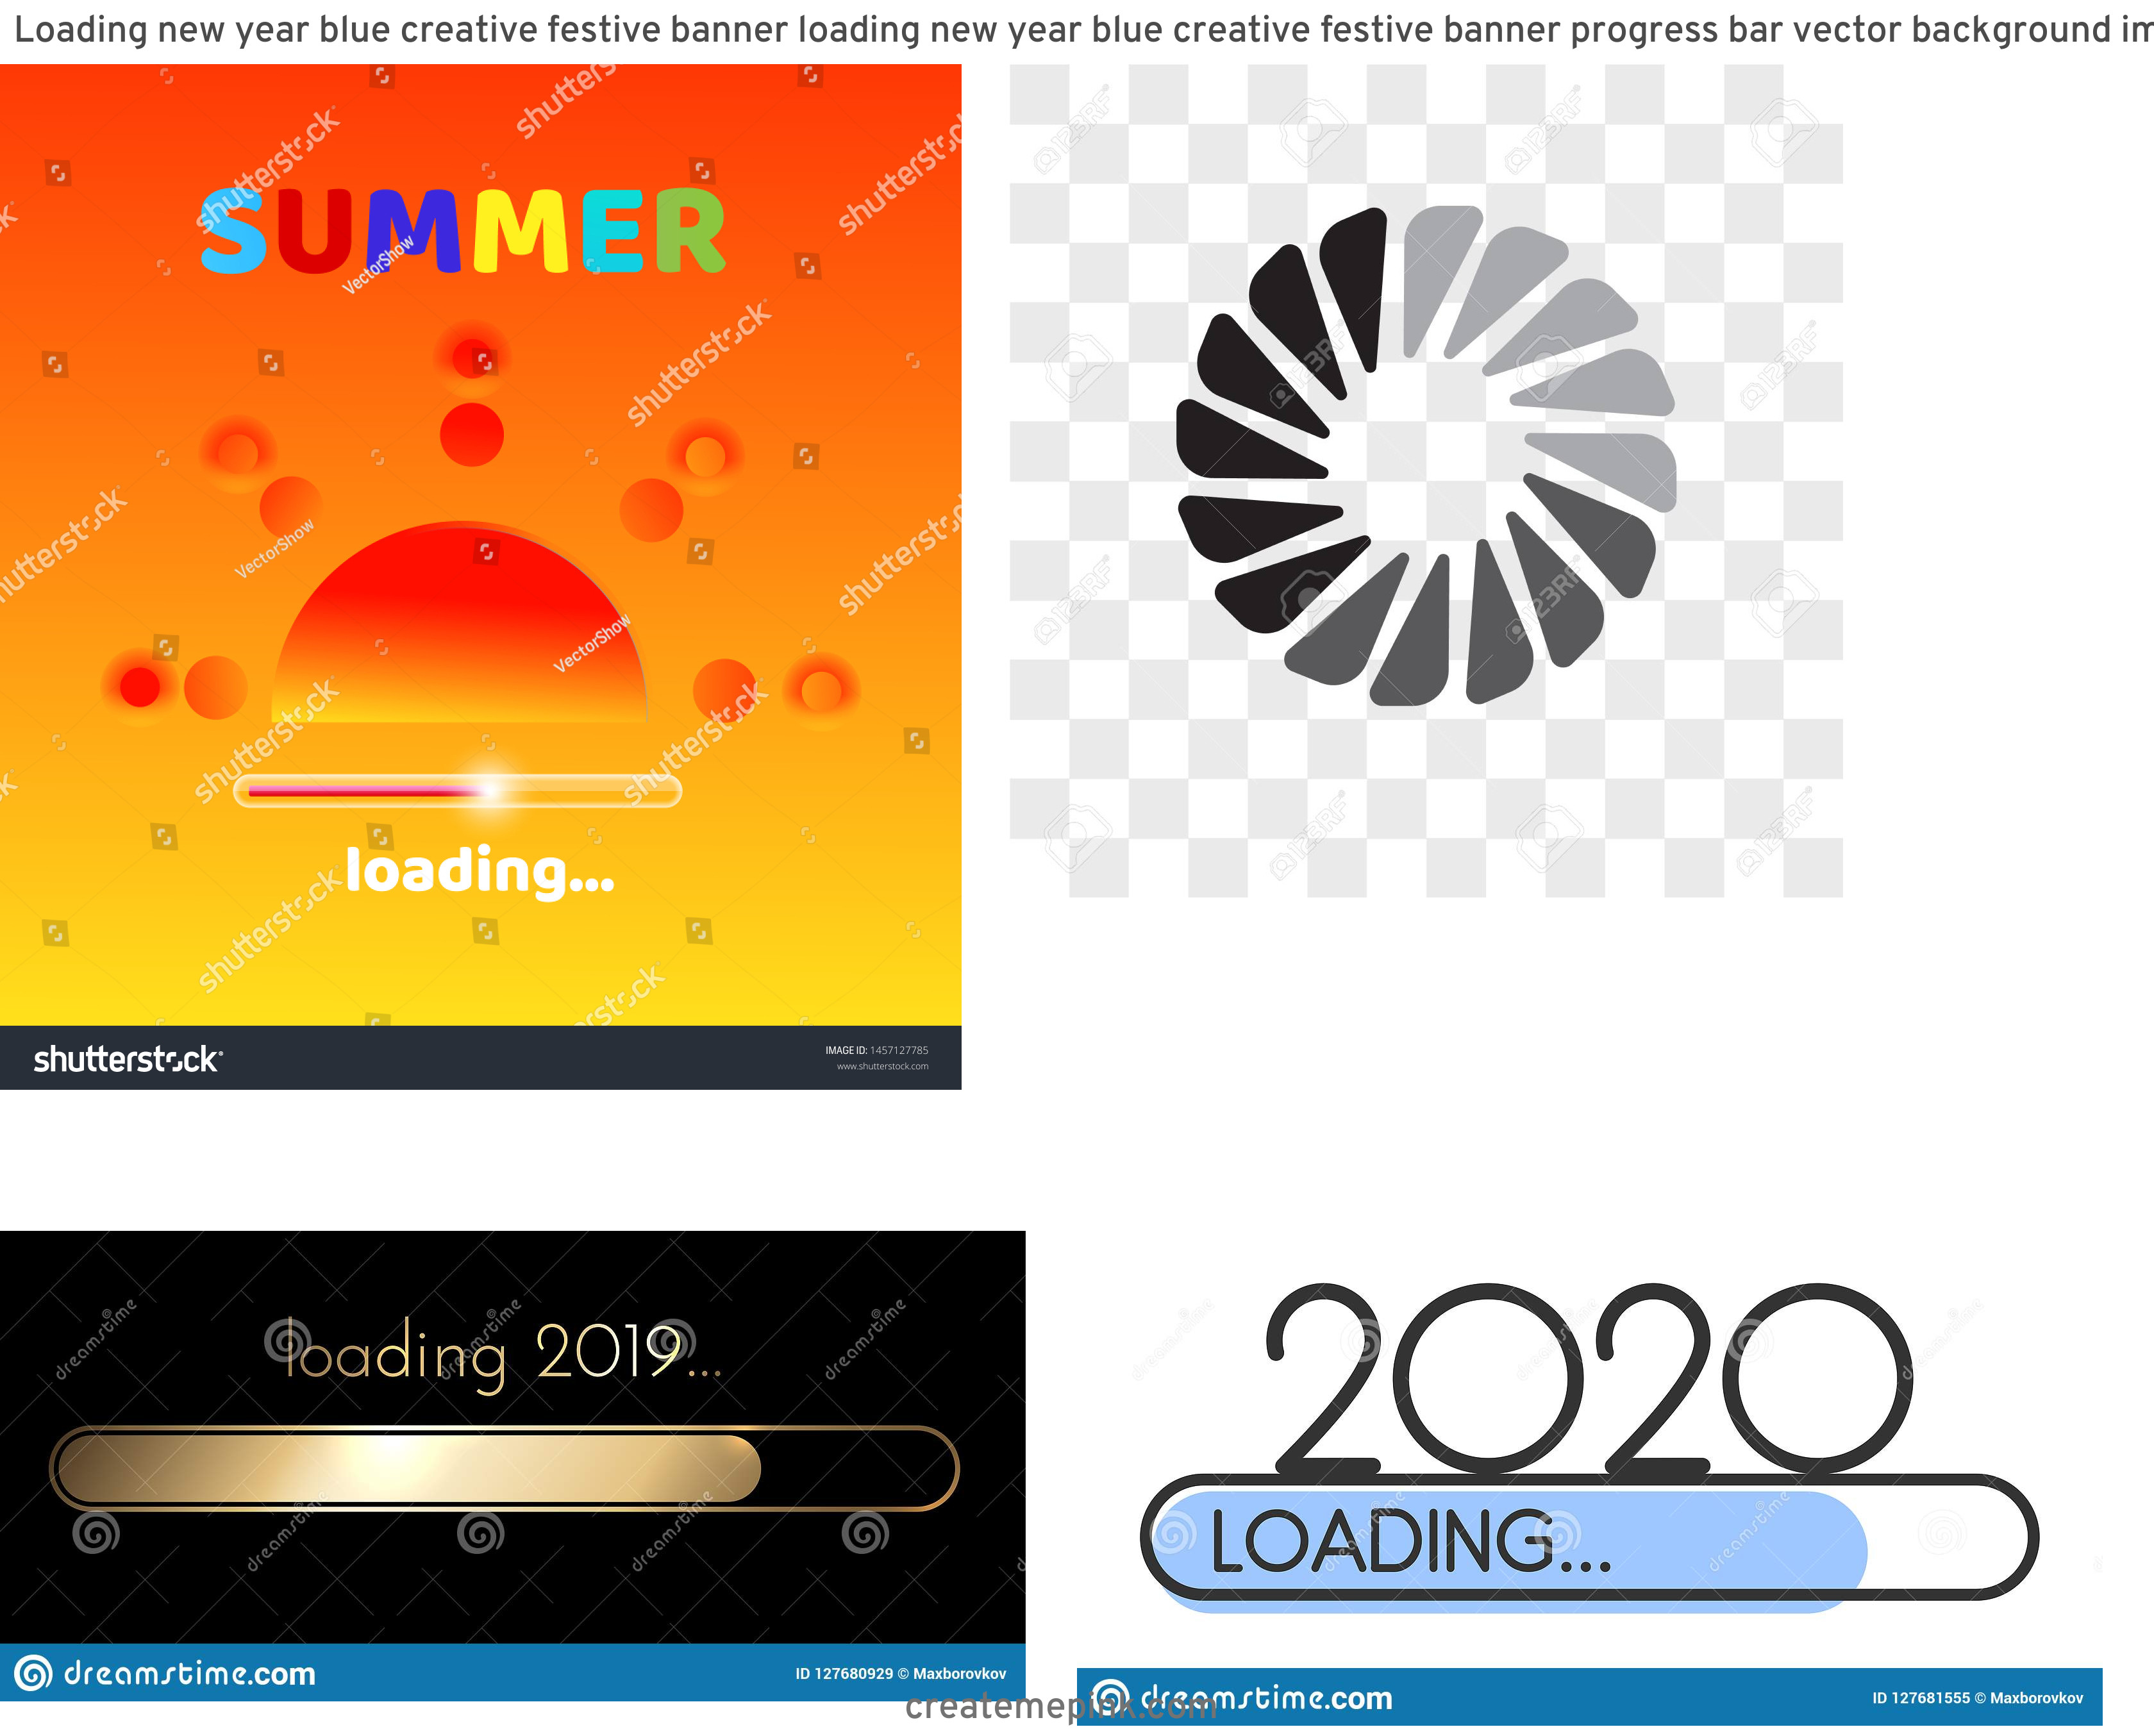 Creative Loading Vector: Loading New Year Blue Creative Festive Banner Loading New Year Blue Creative Festive Banner Progress Bar Vector Background Image